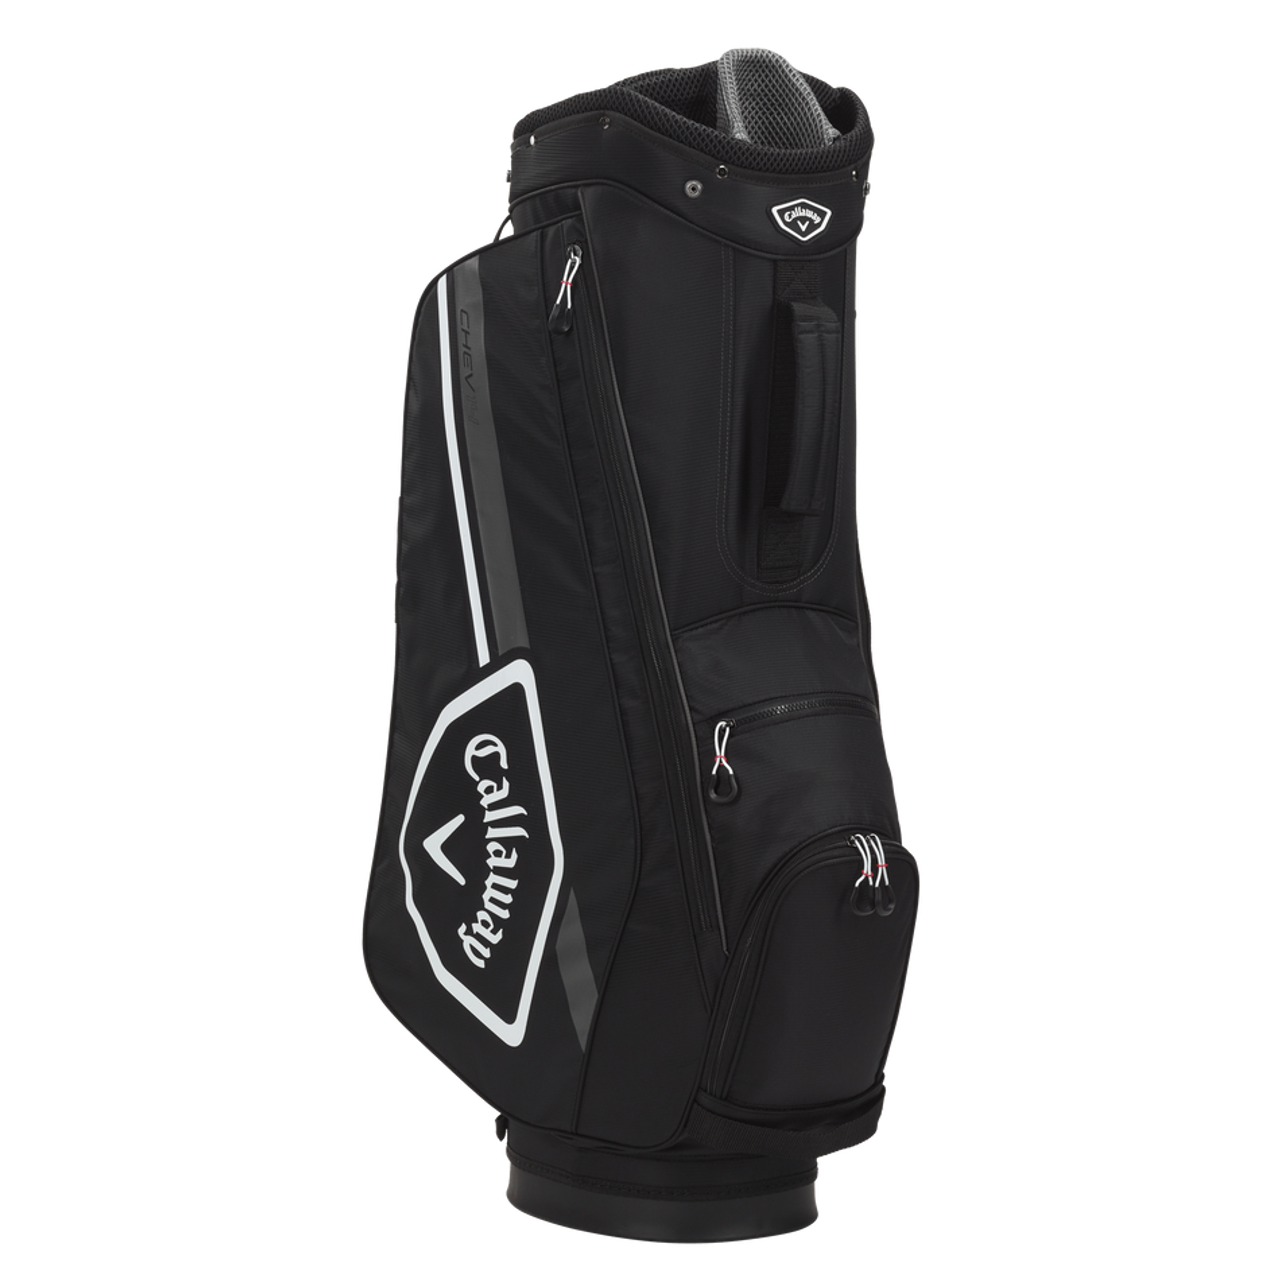 Callaway Chev 14 Cart Bag 2021 - Black / White / Charcoal